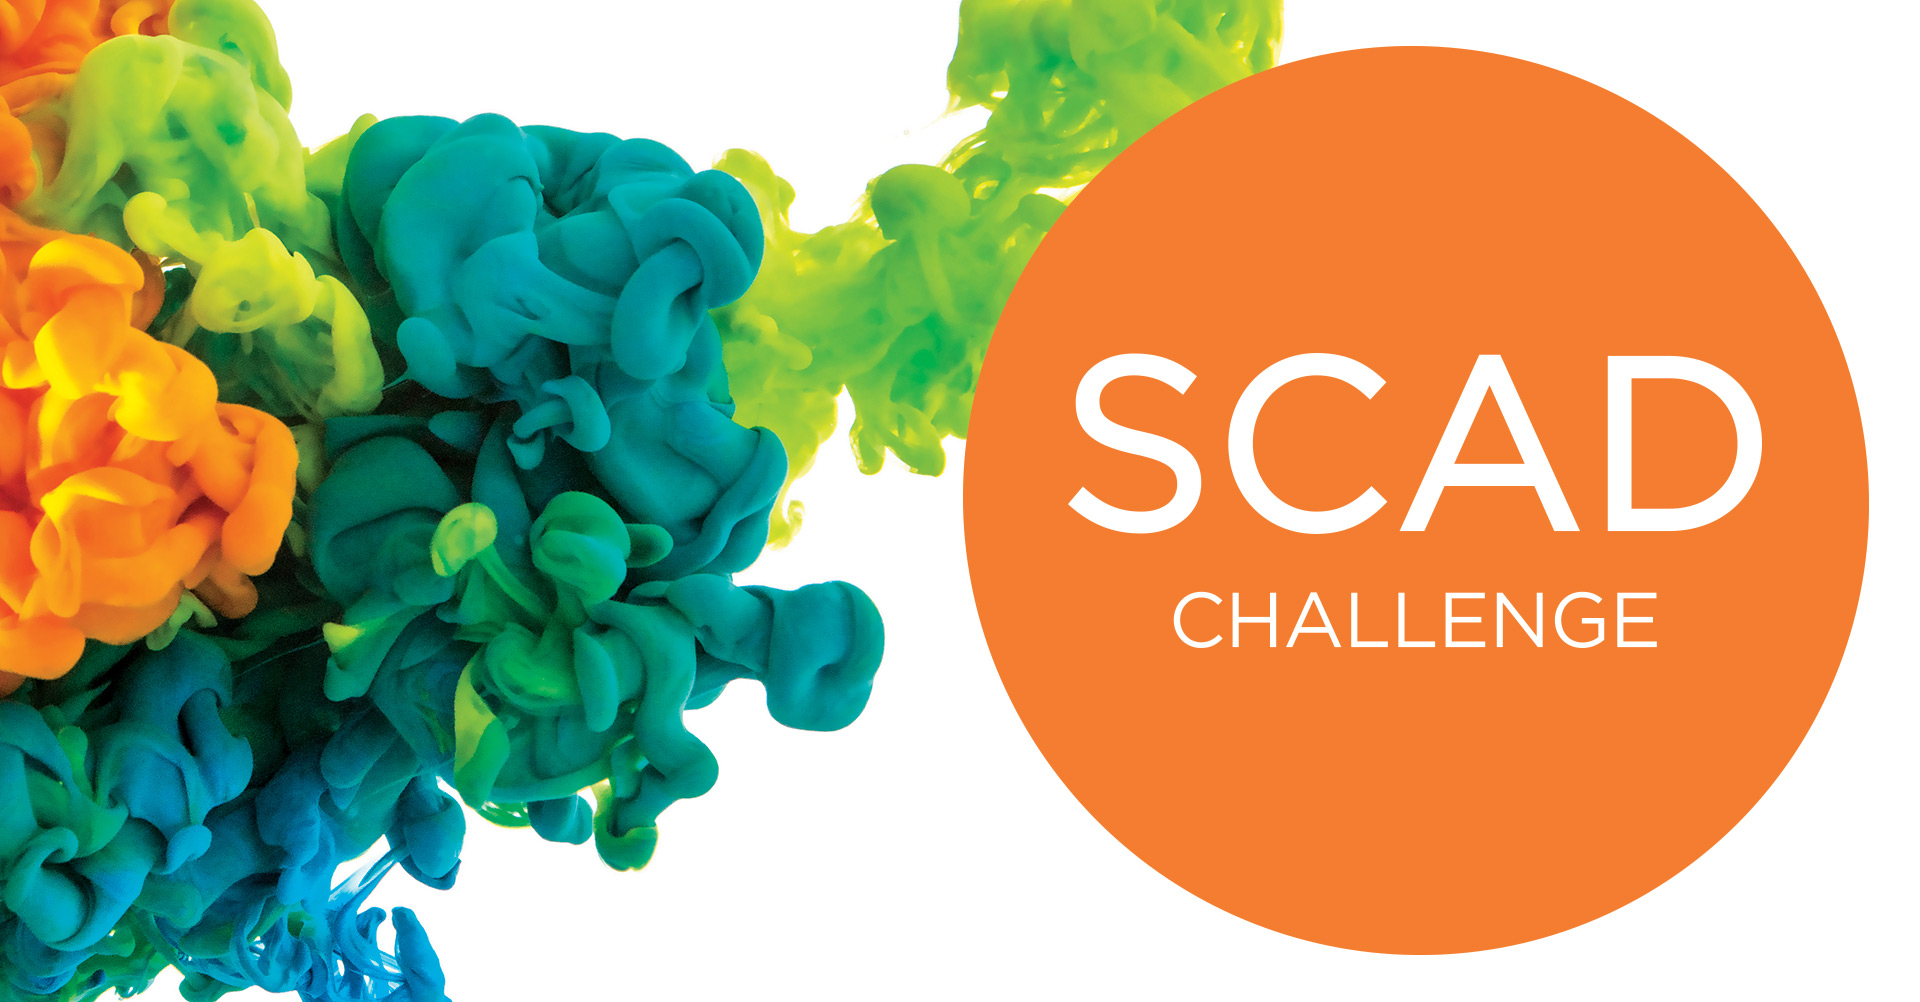 Poster design challenge - Take The Scad Challenge